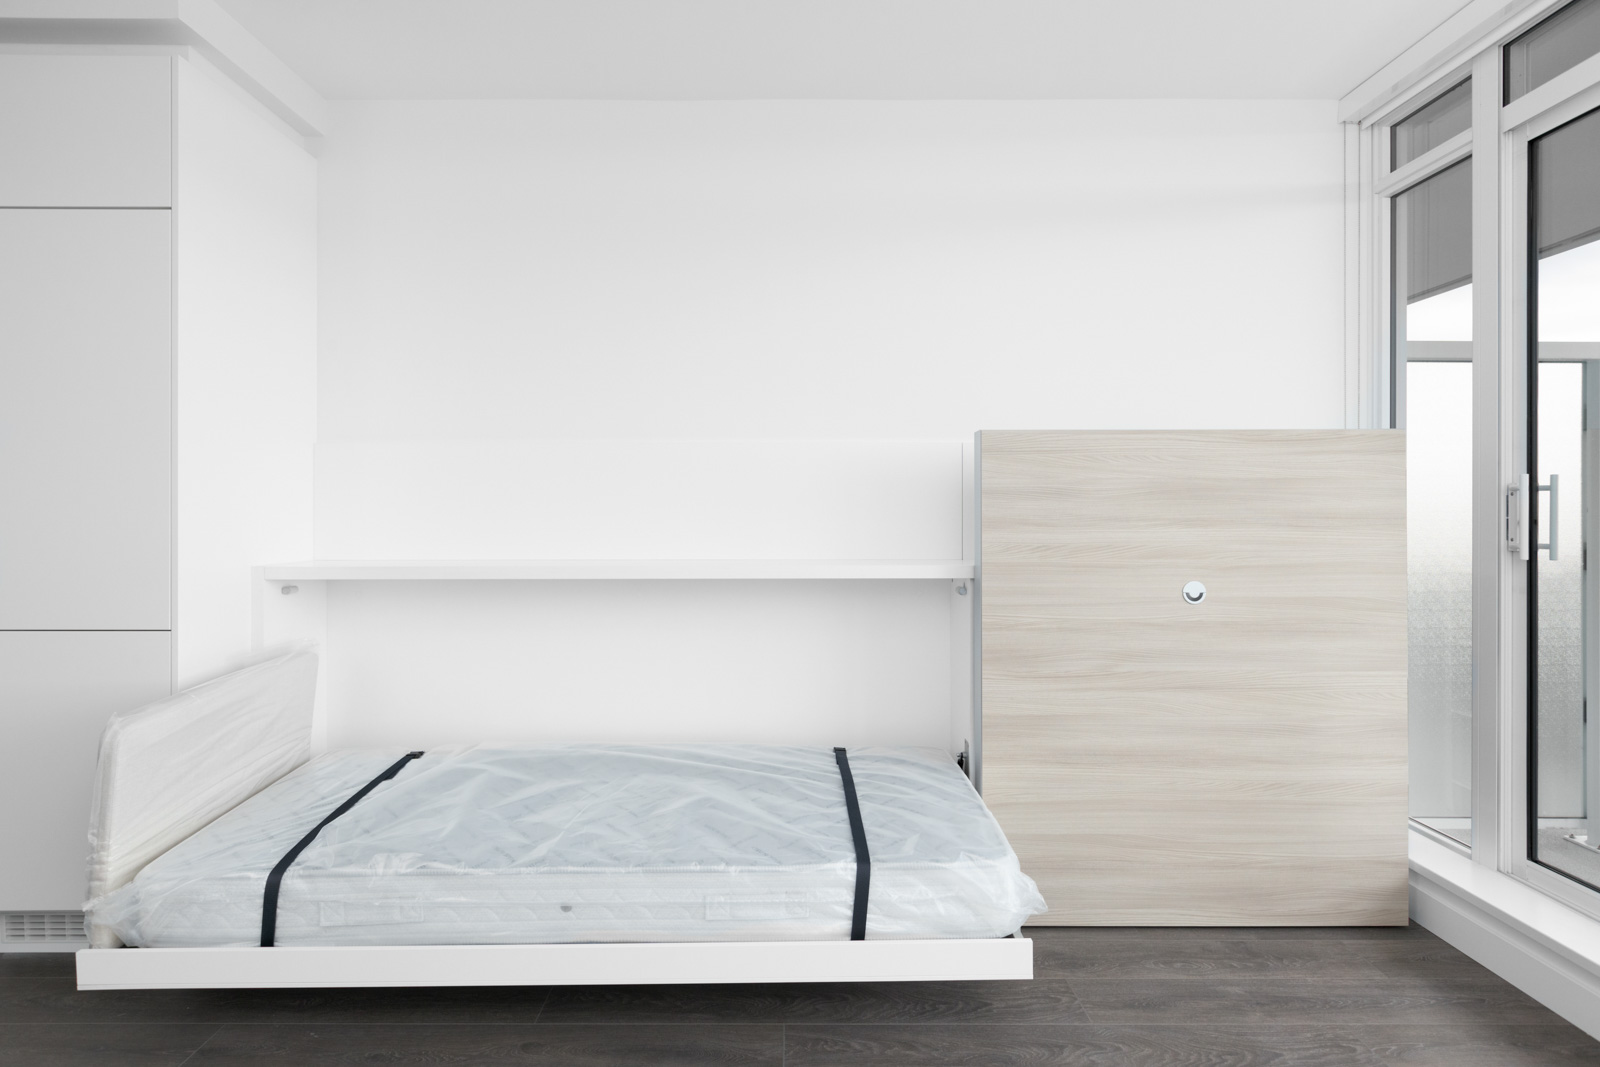 built in bed with white mattress on the right and cabinet feature on left along the wall in empty condo bedroom